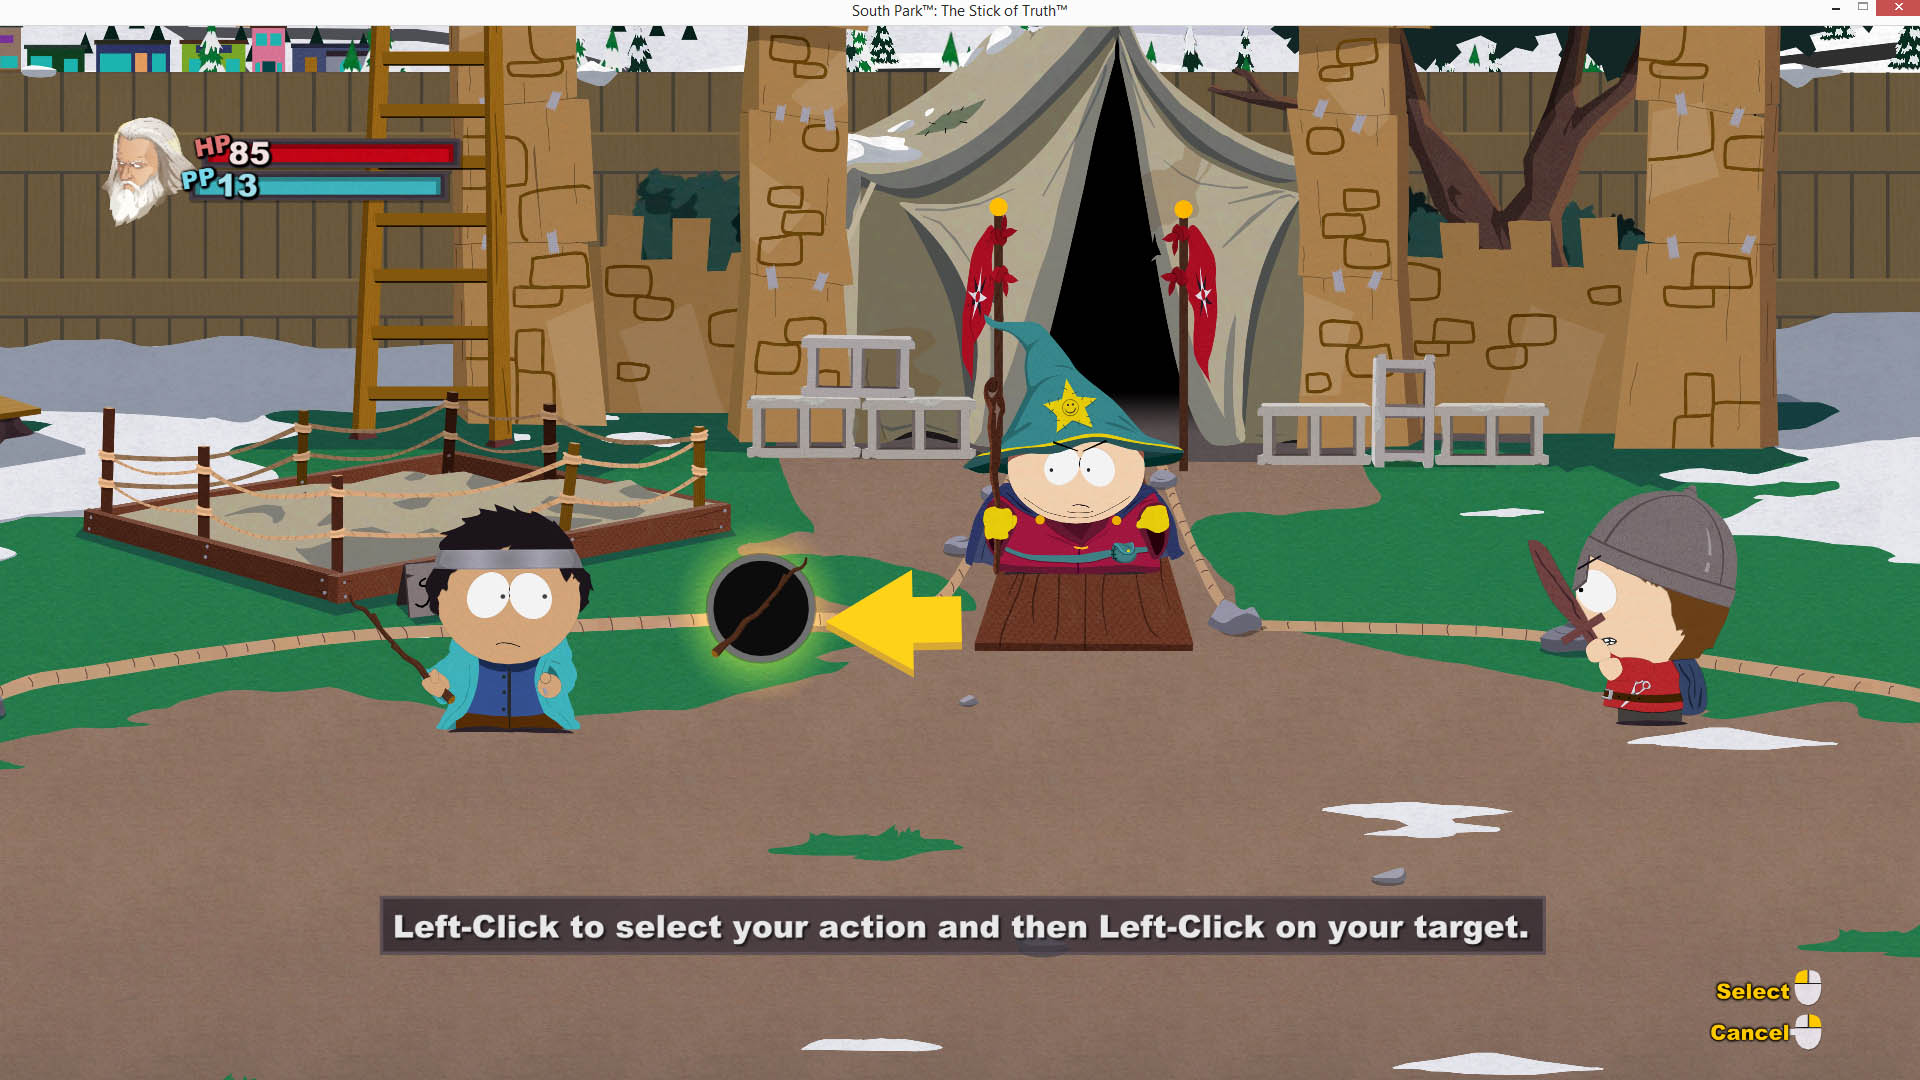 South Park Stick of Truth Intro Tutorial